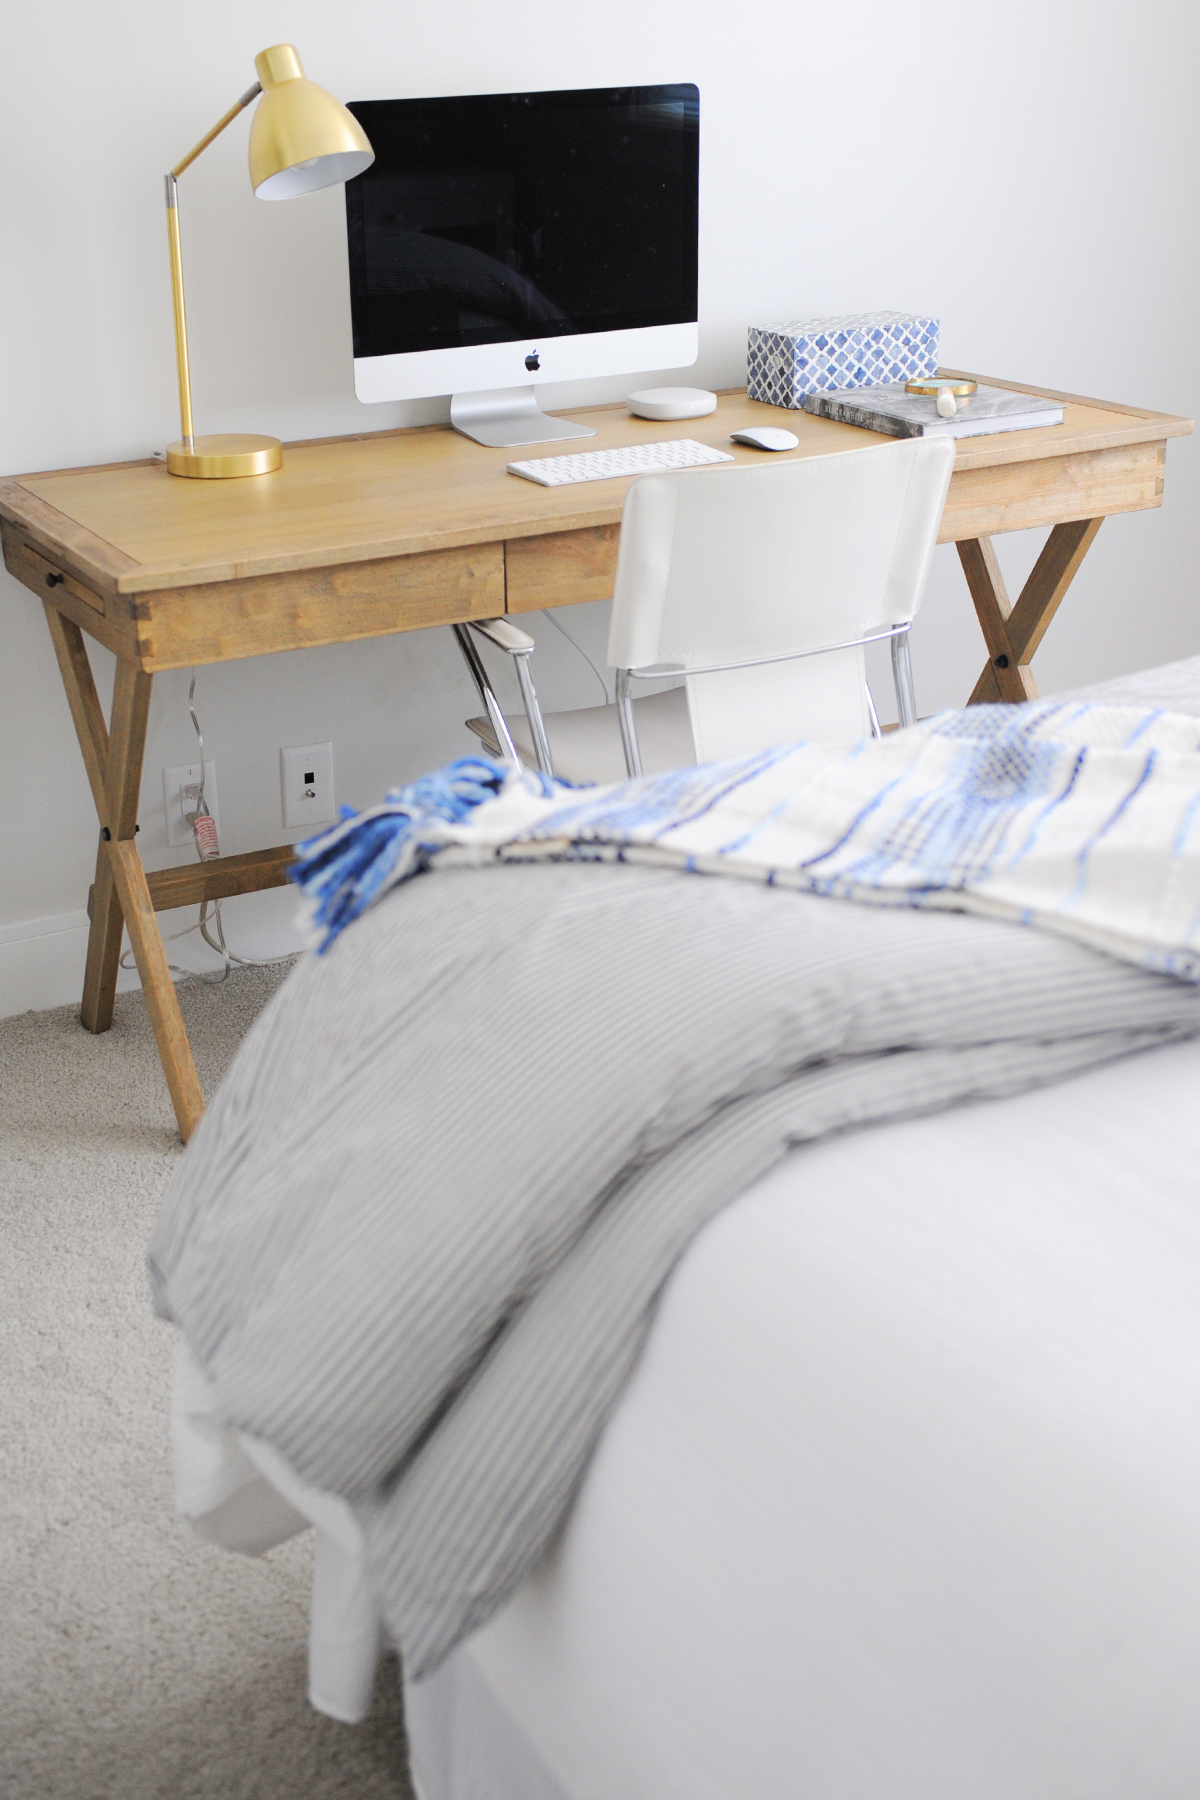 Step 3 Guest Room Must Haves- Tips for Creating the Ultimate Guest Room